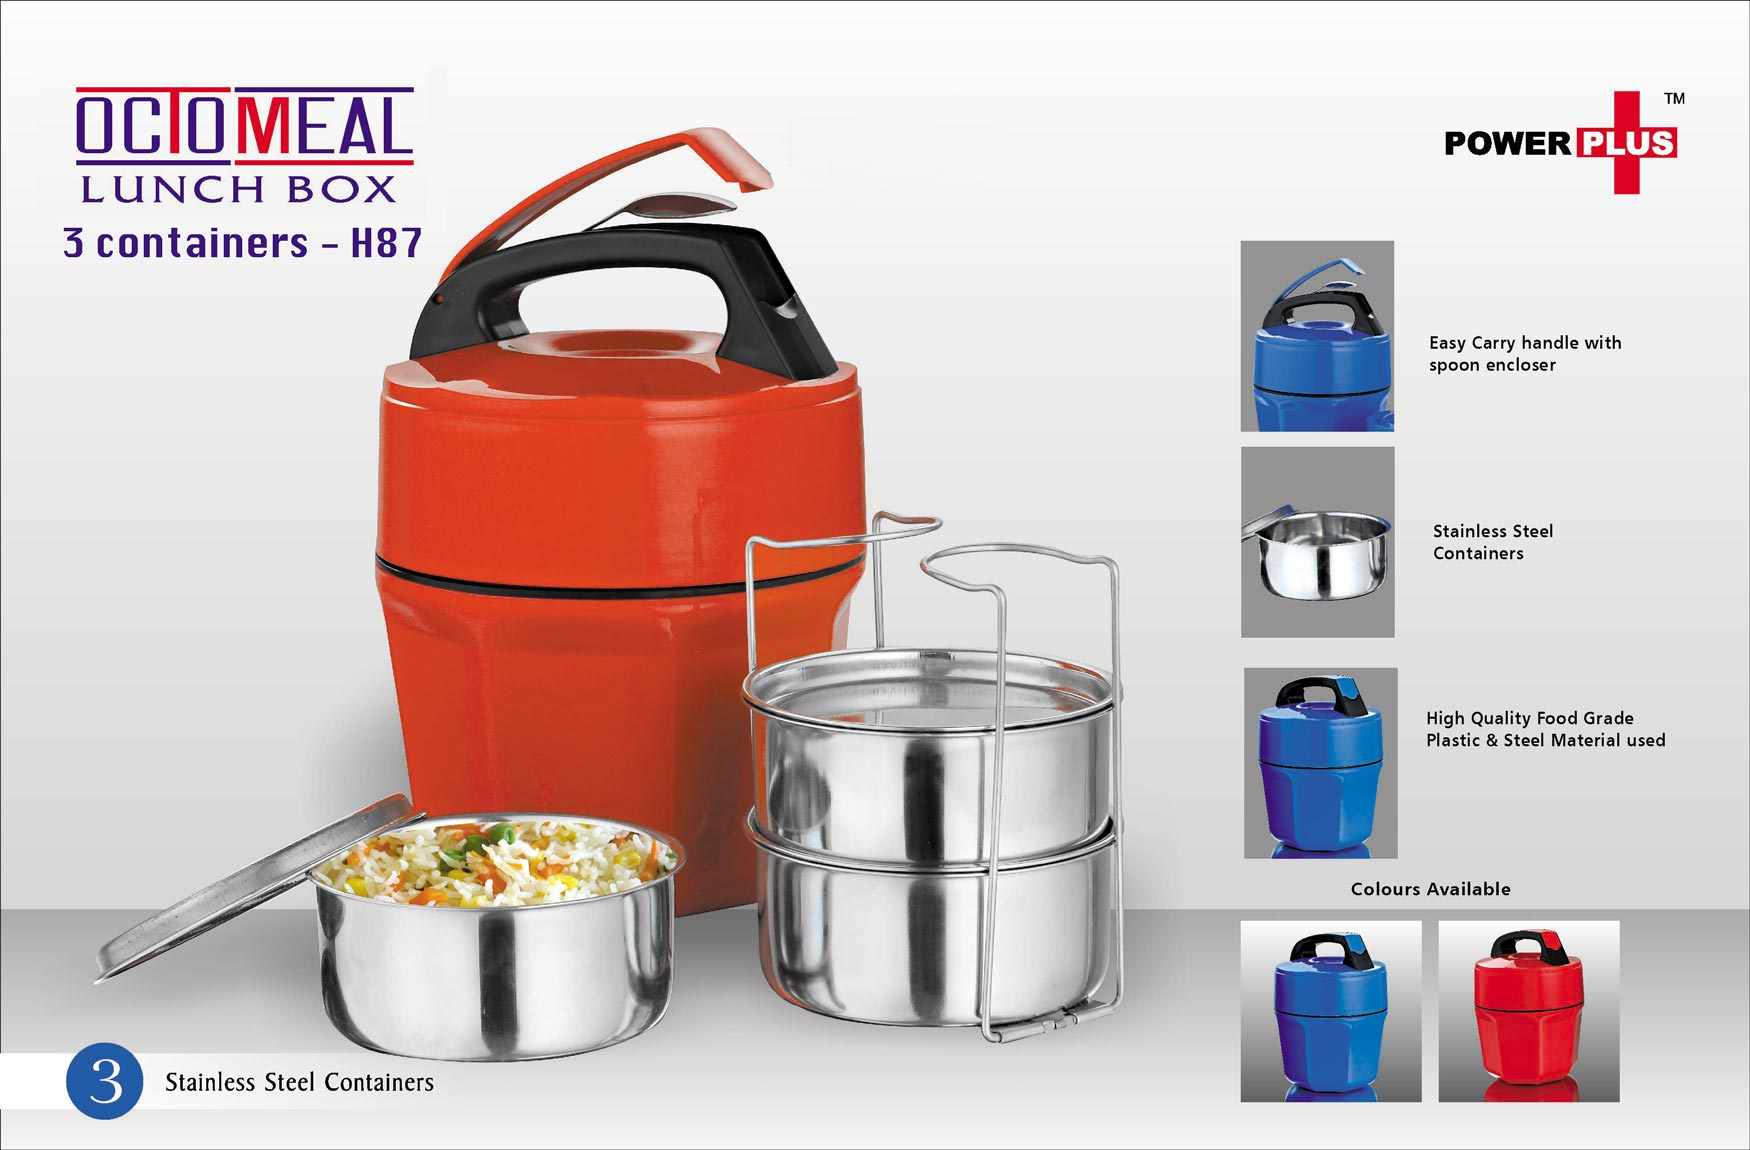 H87 - Power Plus Octomeal Lunch box - 3 containers (steel)